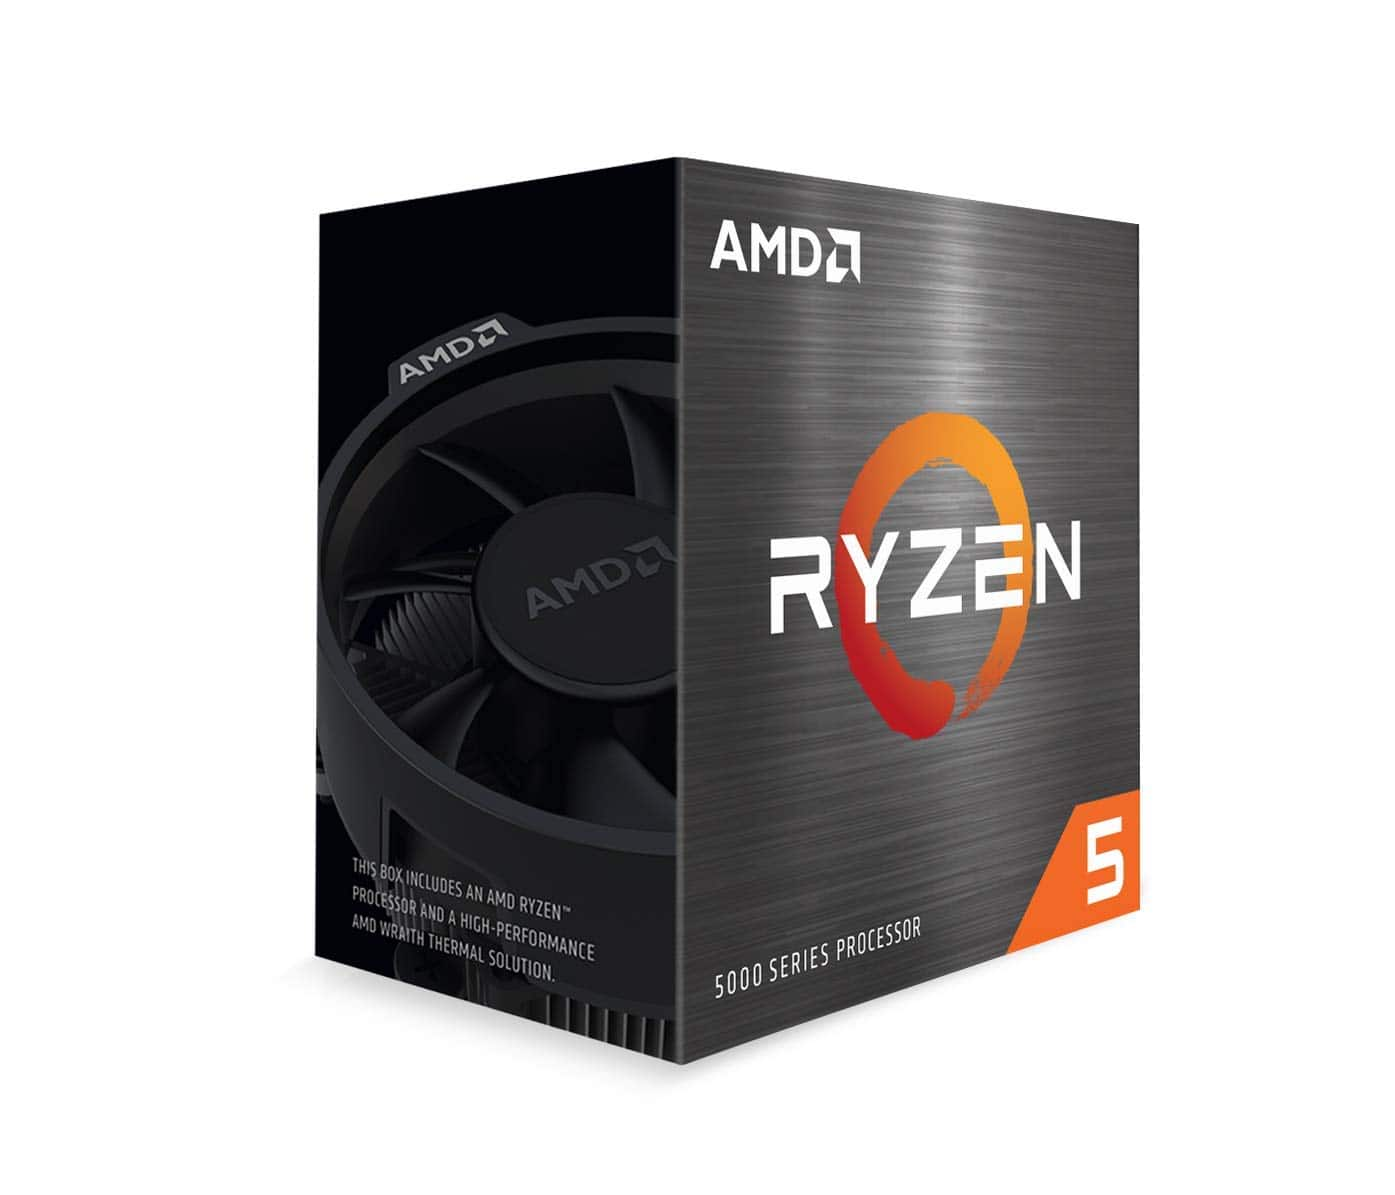 AMD Ryzen 5 5600X Vermeer 3.7GHz 6-Core - in store only $260 at Microcenter